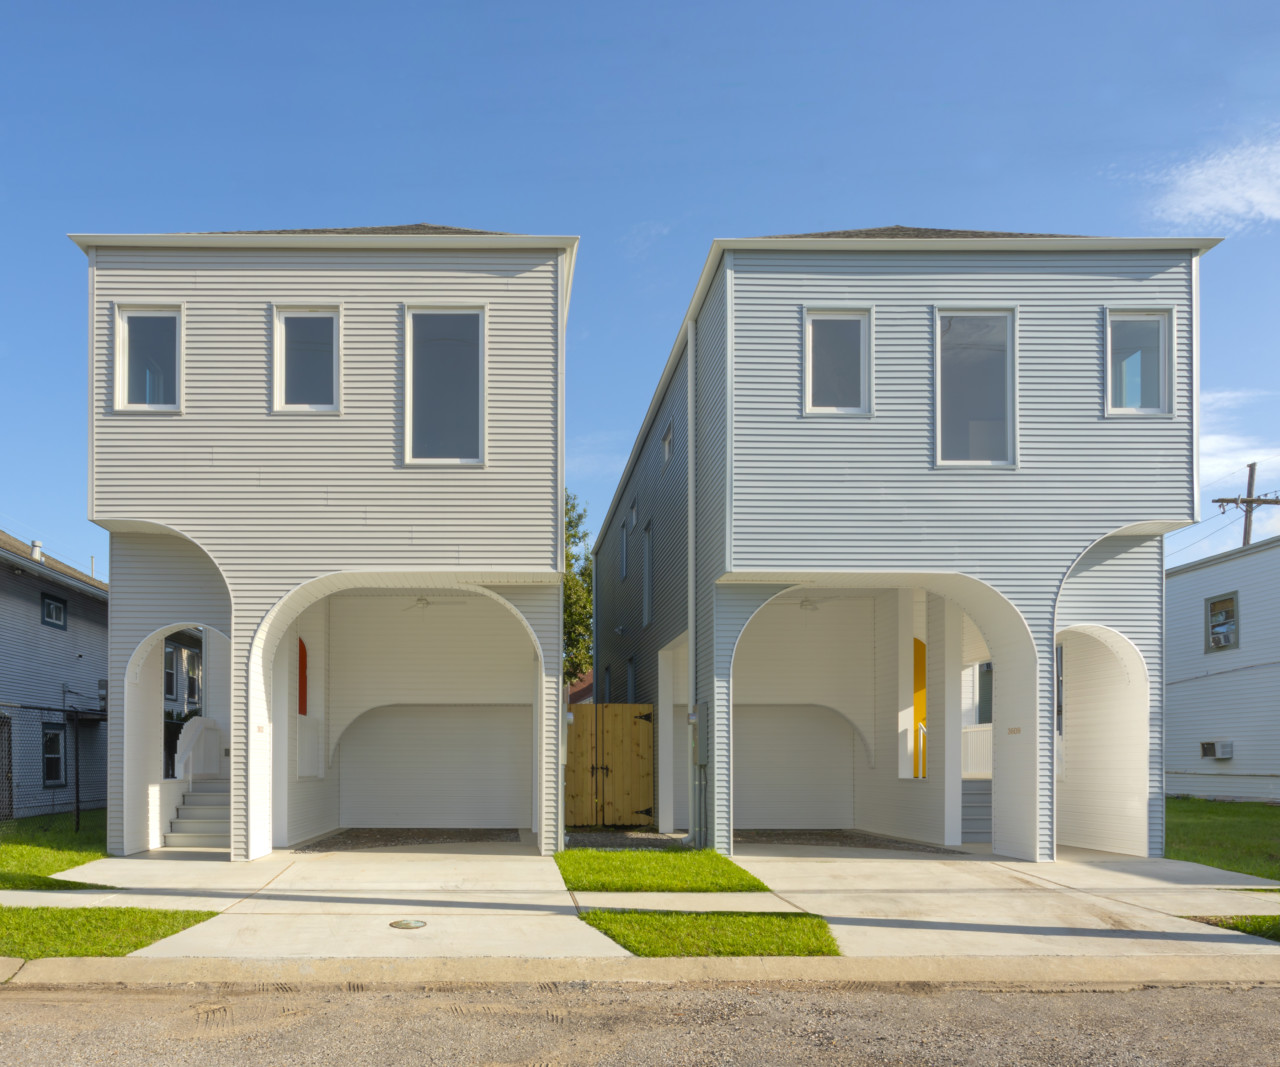 Two homes with colonnades out front, designed by office of jonathan tate